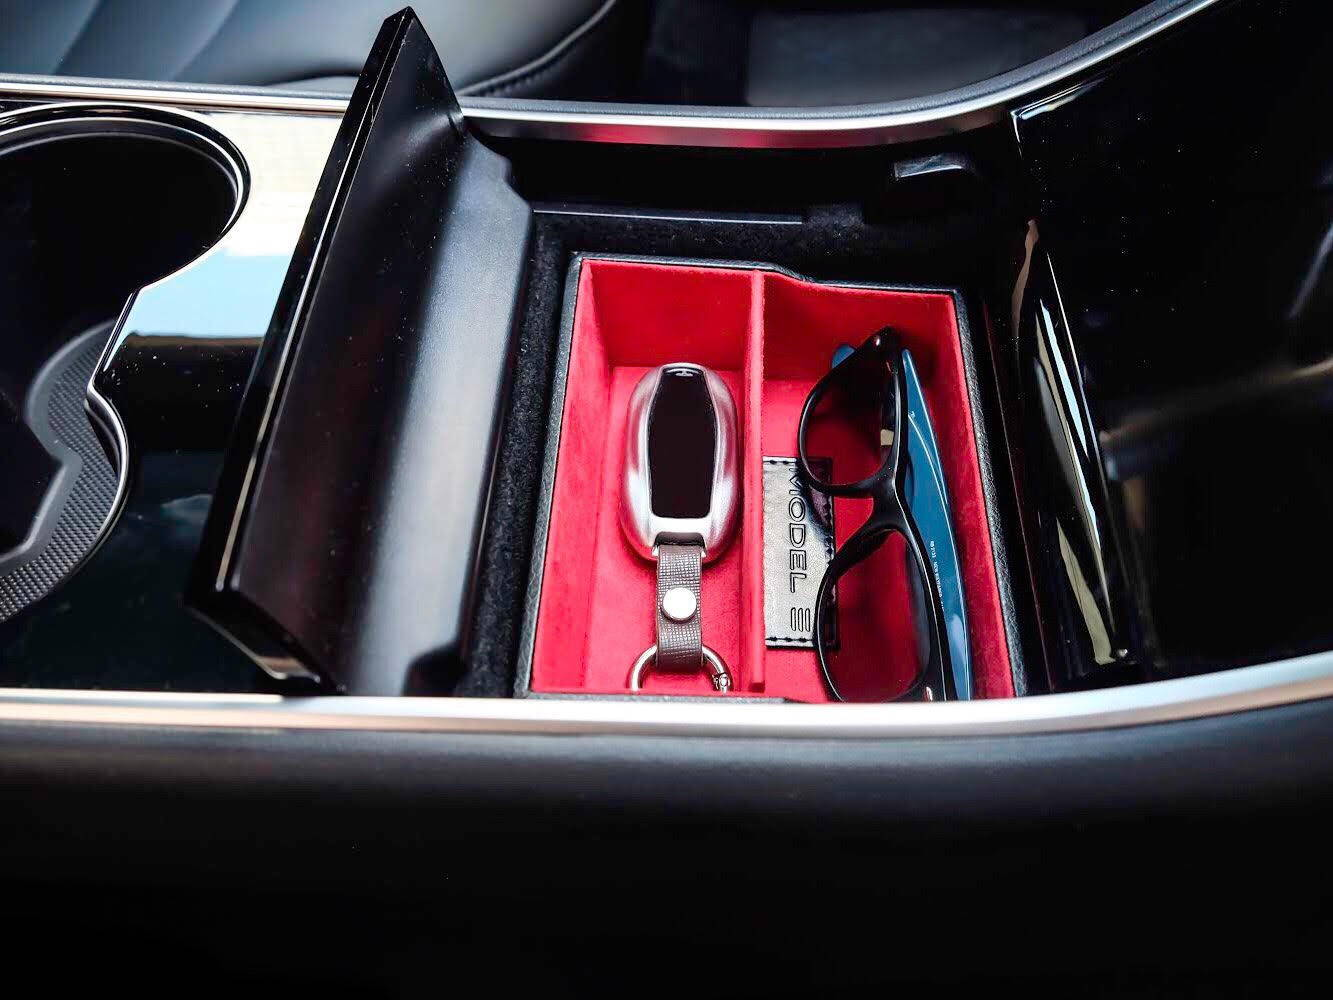 Tesla Model 3 Center Console Storage Cubby, Tesla Model 3 Center Console Compartment, Tesla Model 3 Accessory